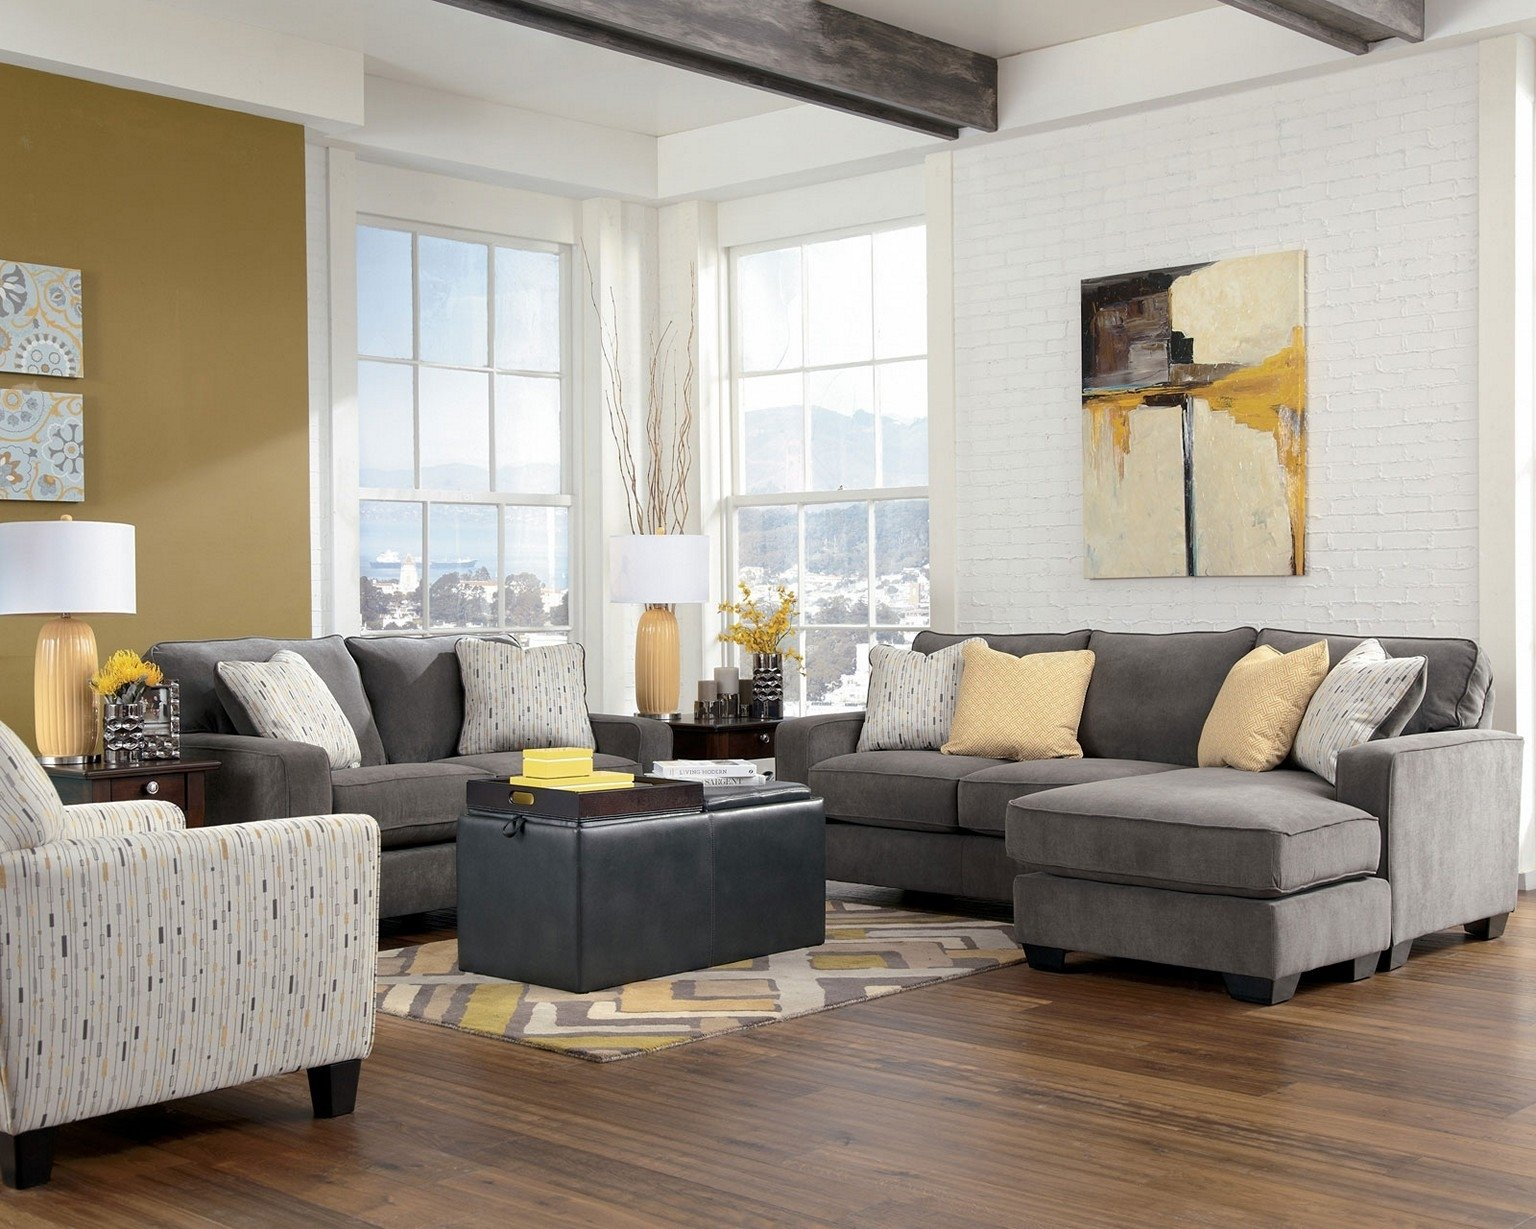 10 Best Gray Couch Living Room Ideas living room color schemes gray couch trends also best design and 2020